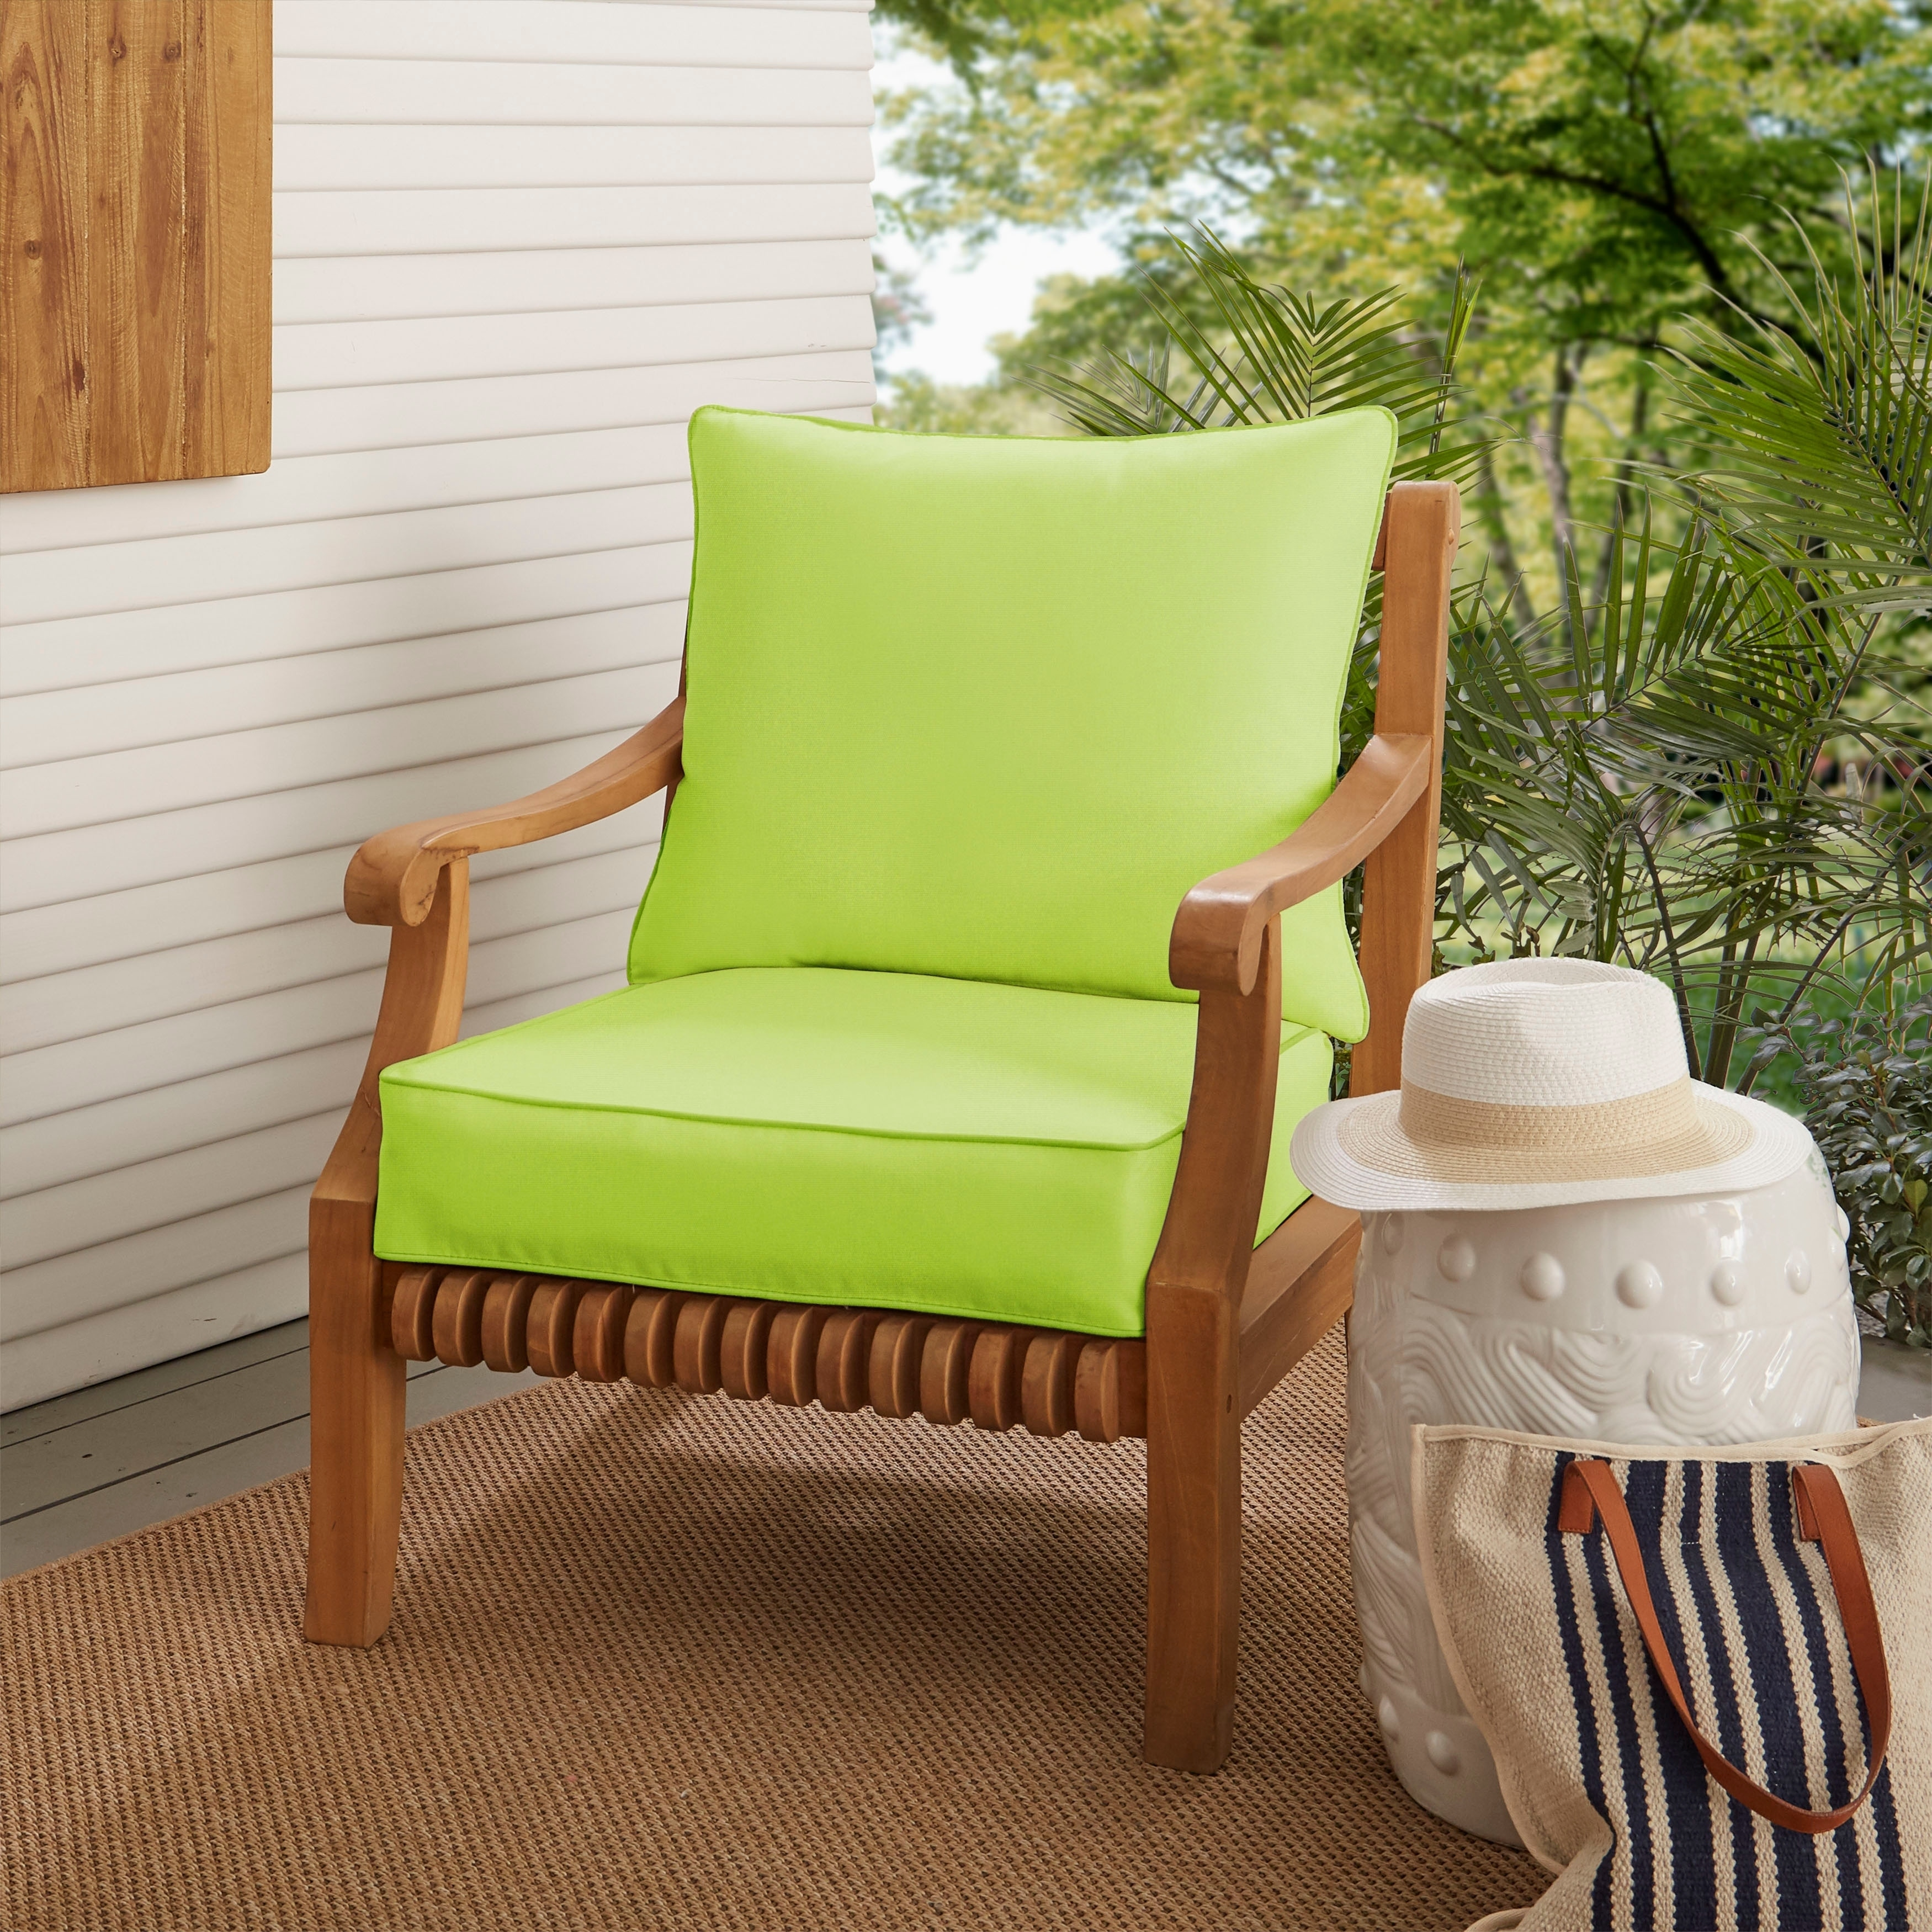 sunbrella light green outdoor deep seating cushion set by havenside home 25 in w x 25 in d